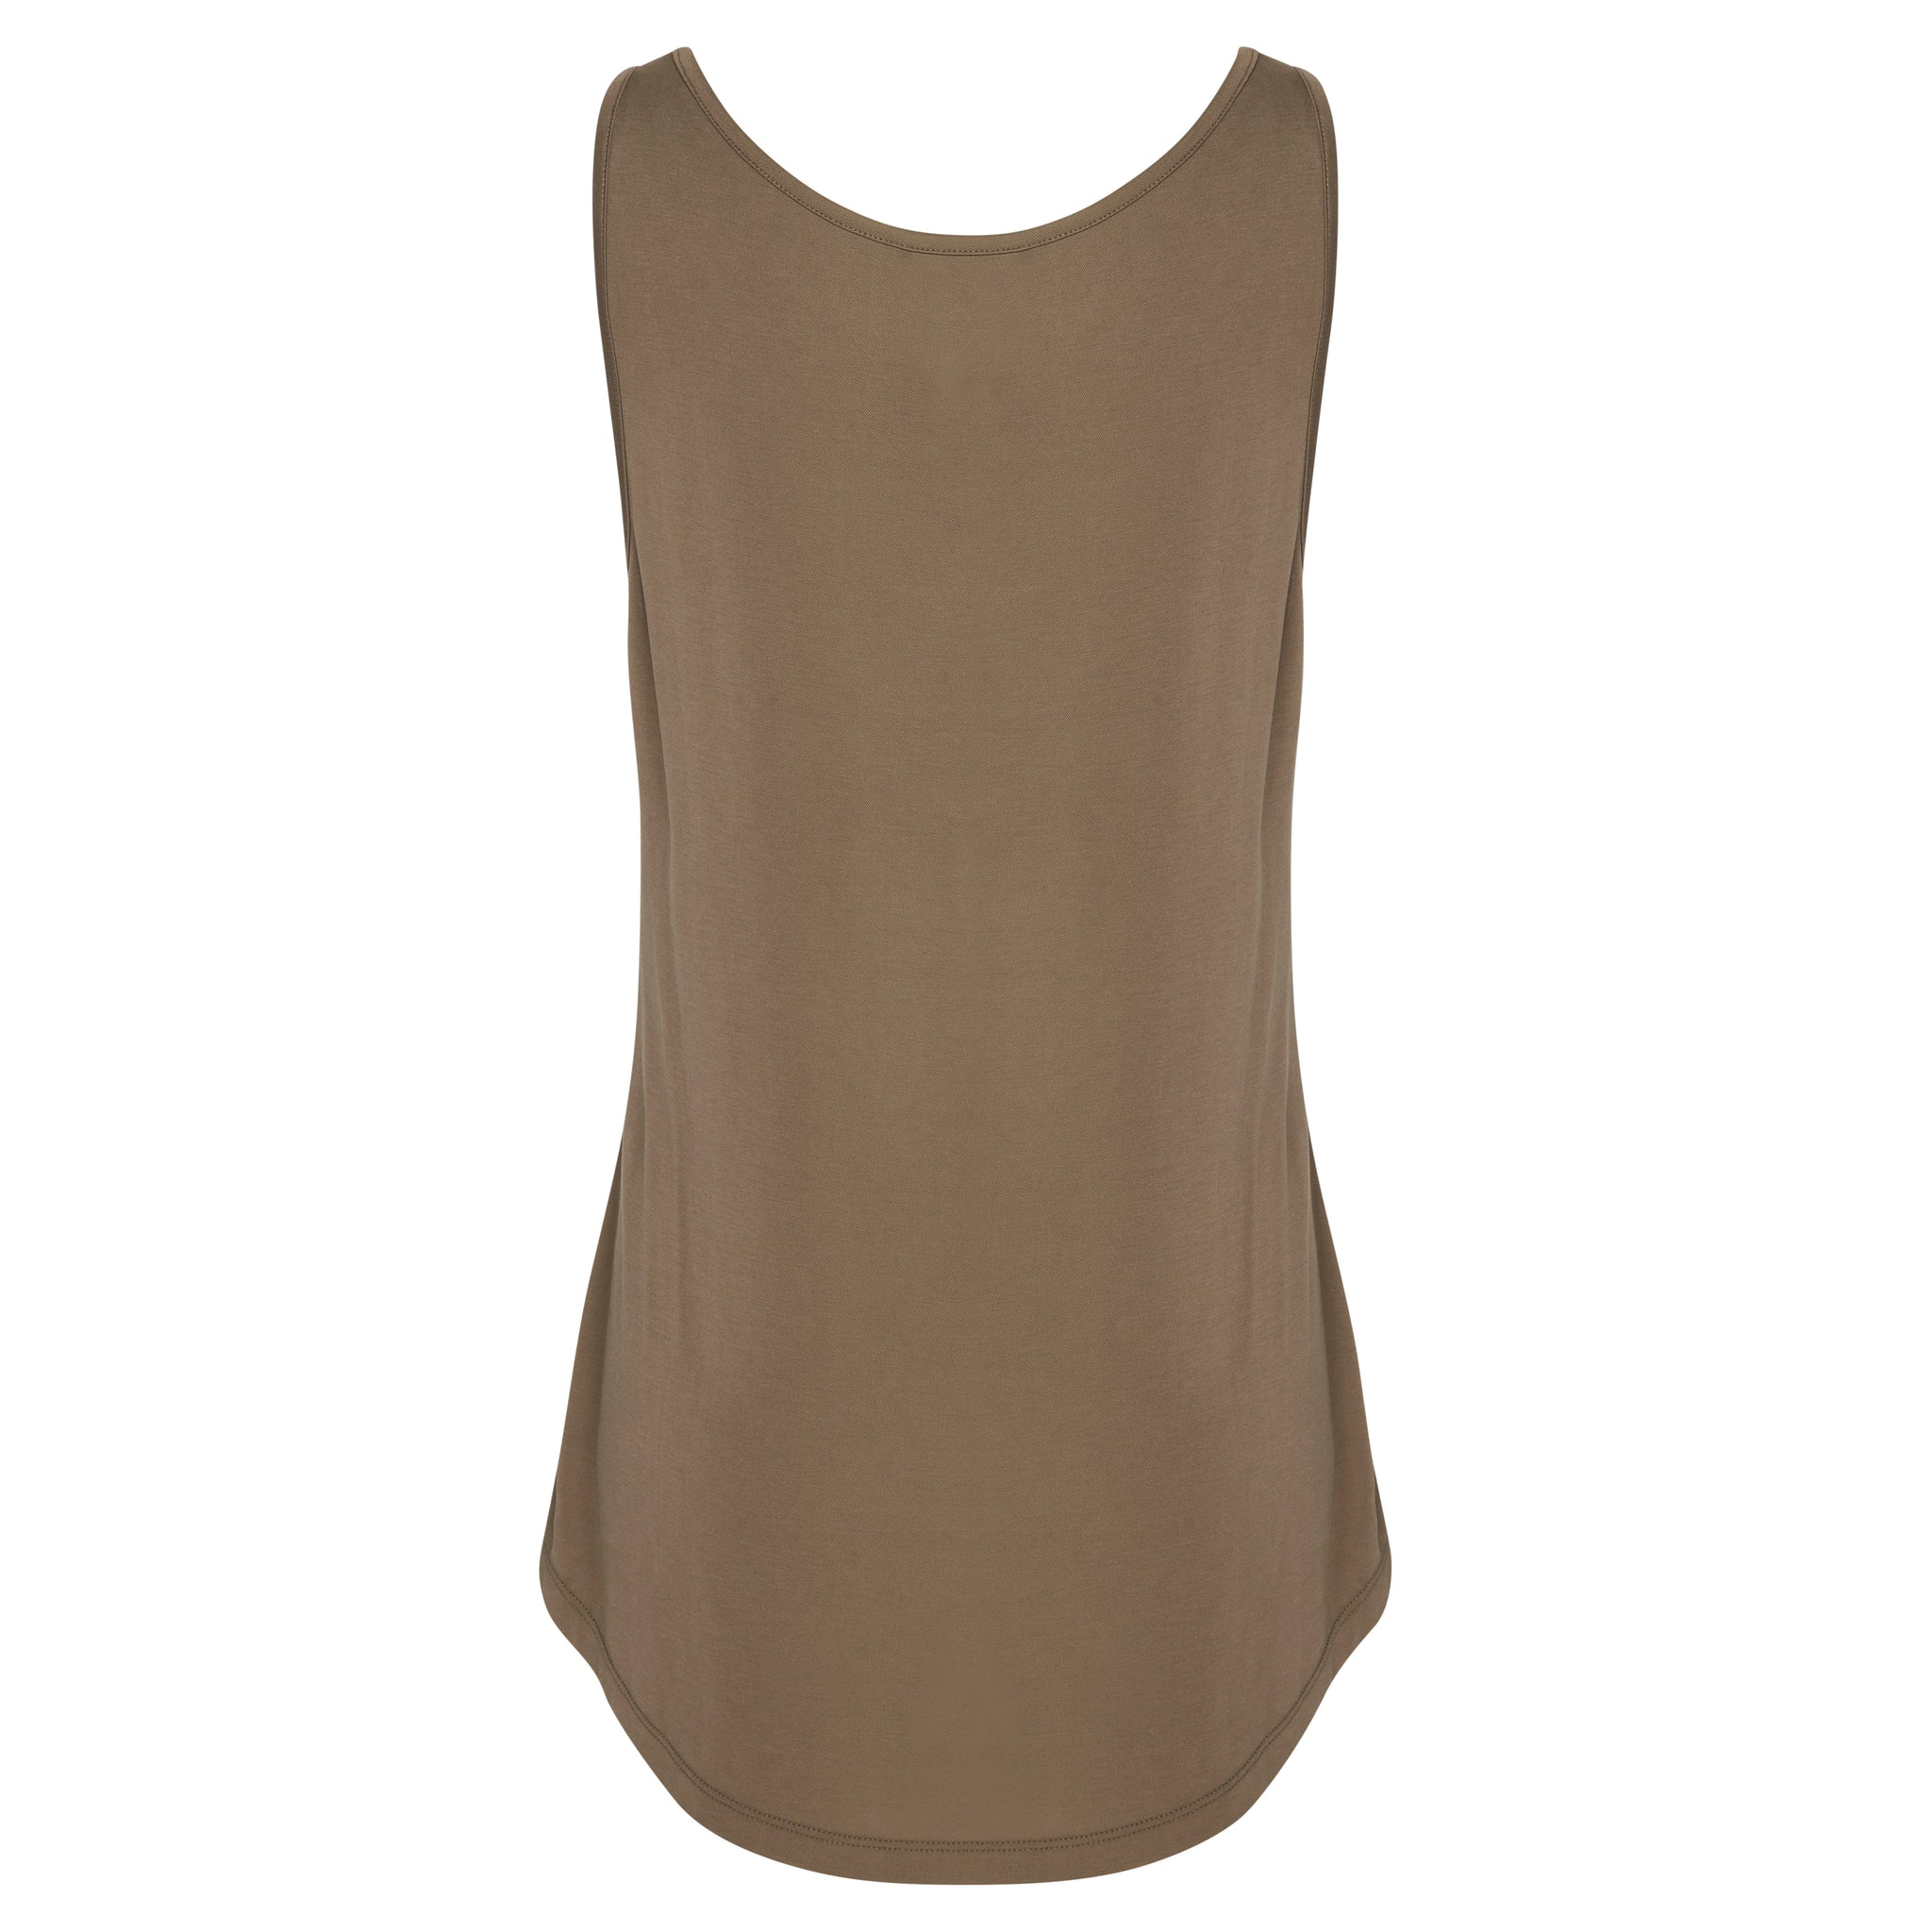 Kotys Longline Tank - Sand Washed Modal Jersey